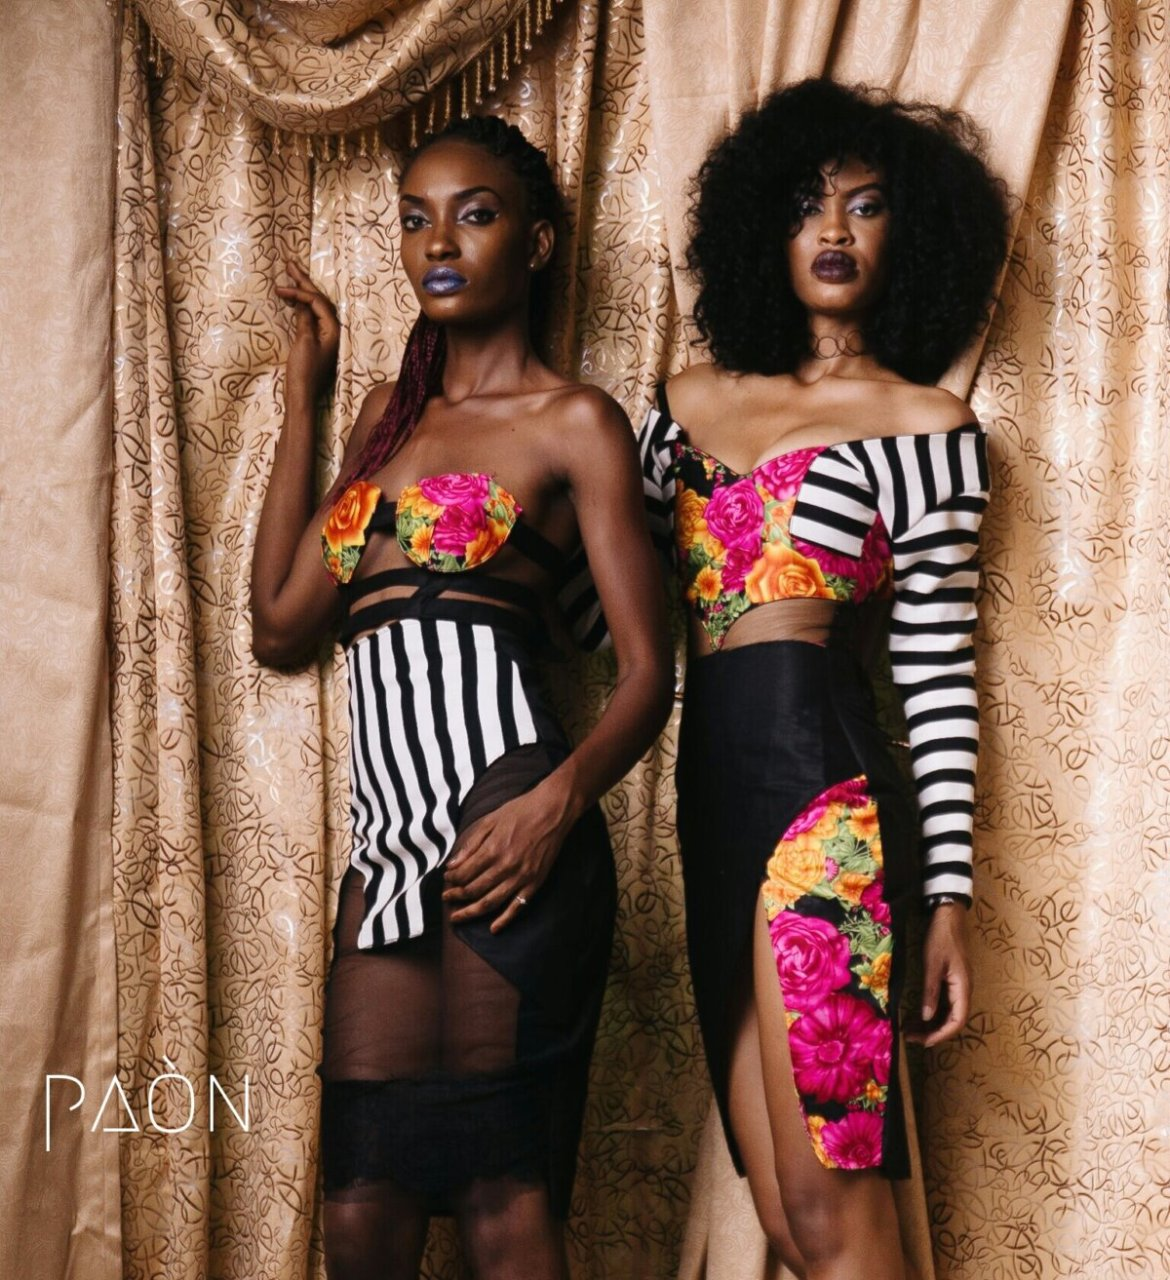 house of paon fashionghana african fashion look book (12)